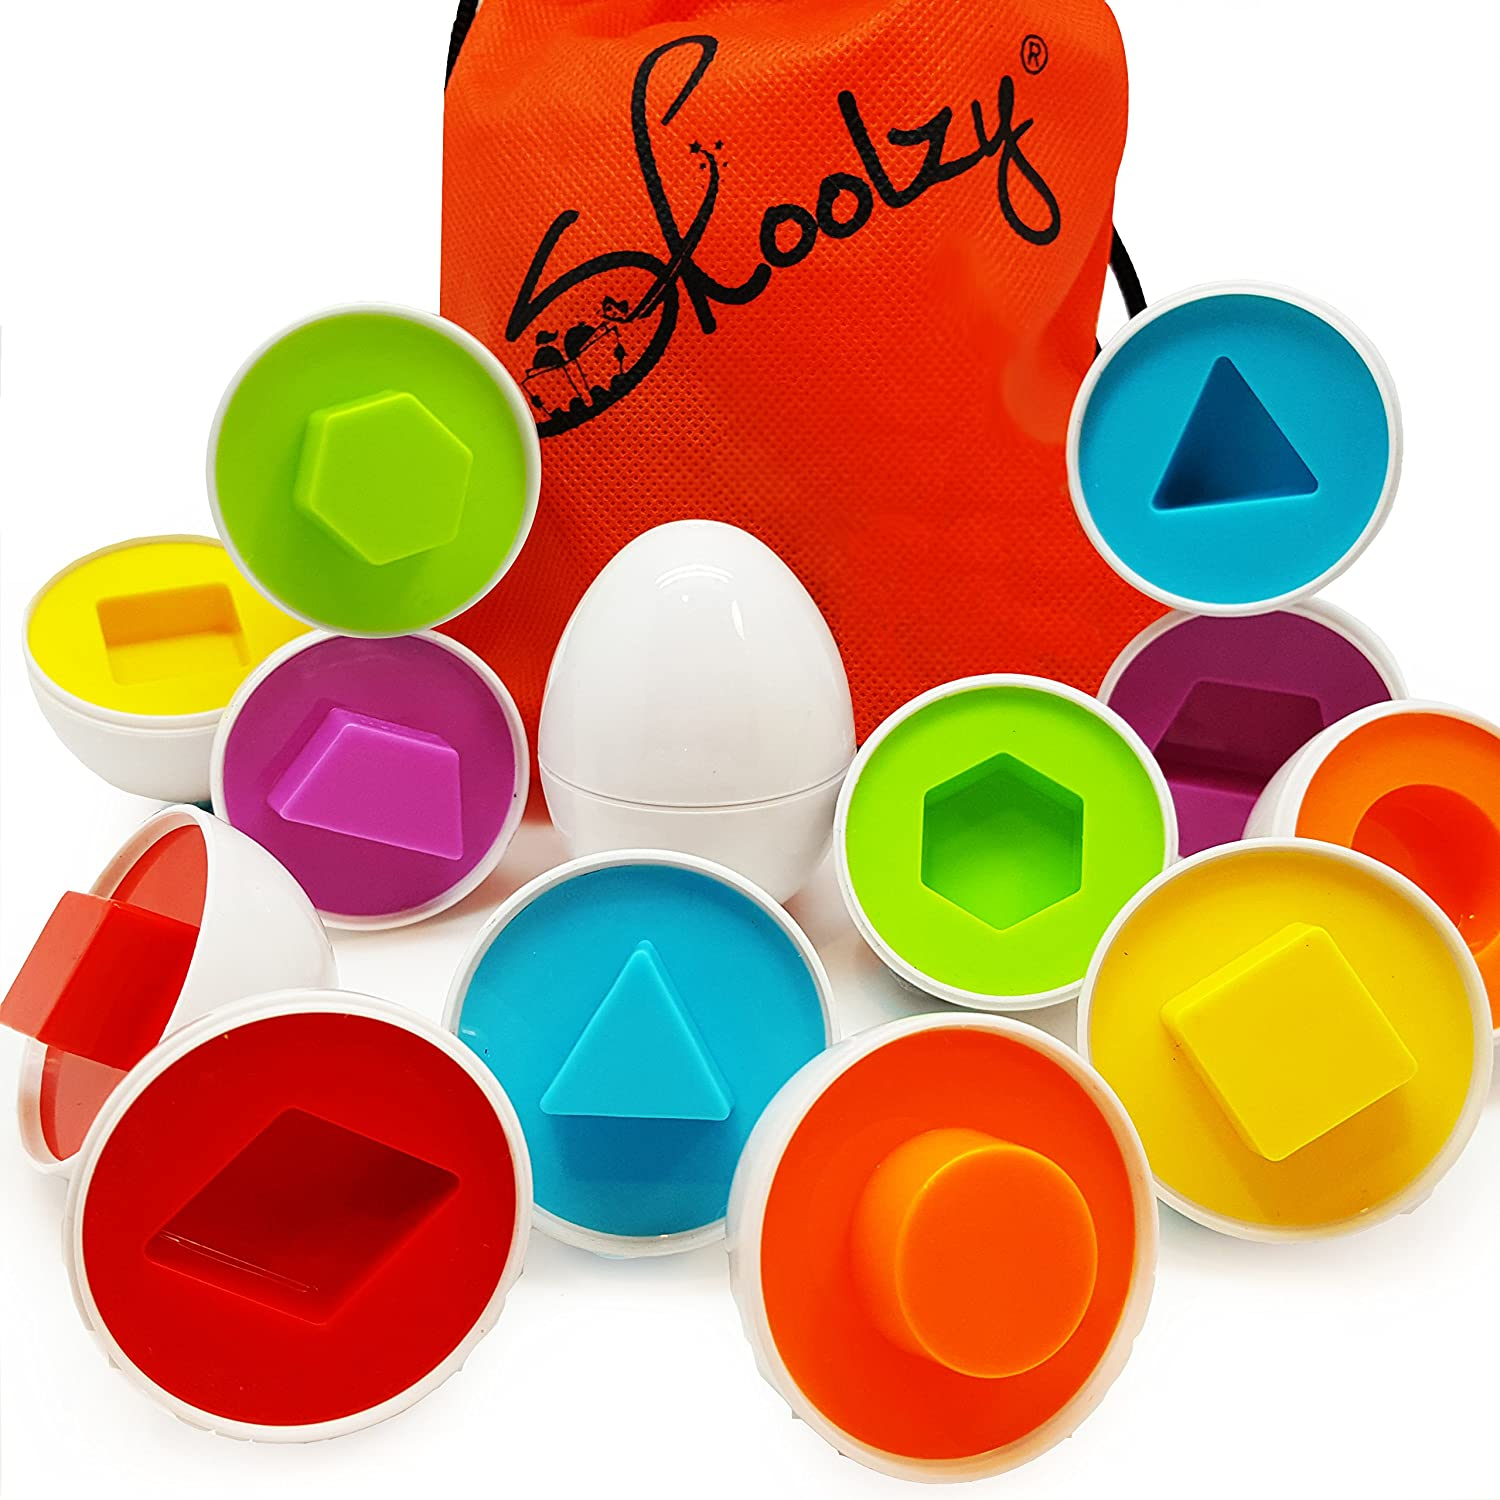 Skoolzy Shapes Toddler Games Egg Toy Learning Colors and Geometric Shapes Matching Preschool Toys Puzzles for 2, 3, 4 year olds - Montessori Fine Motor Skills Sorting Educational Easter Eggs and Bag